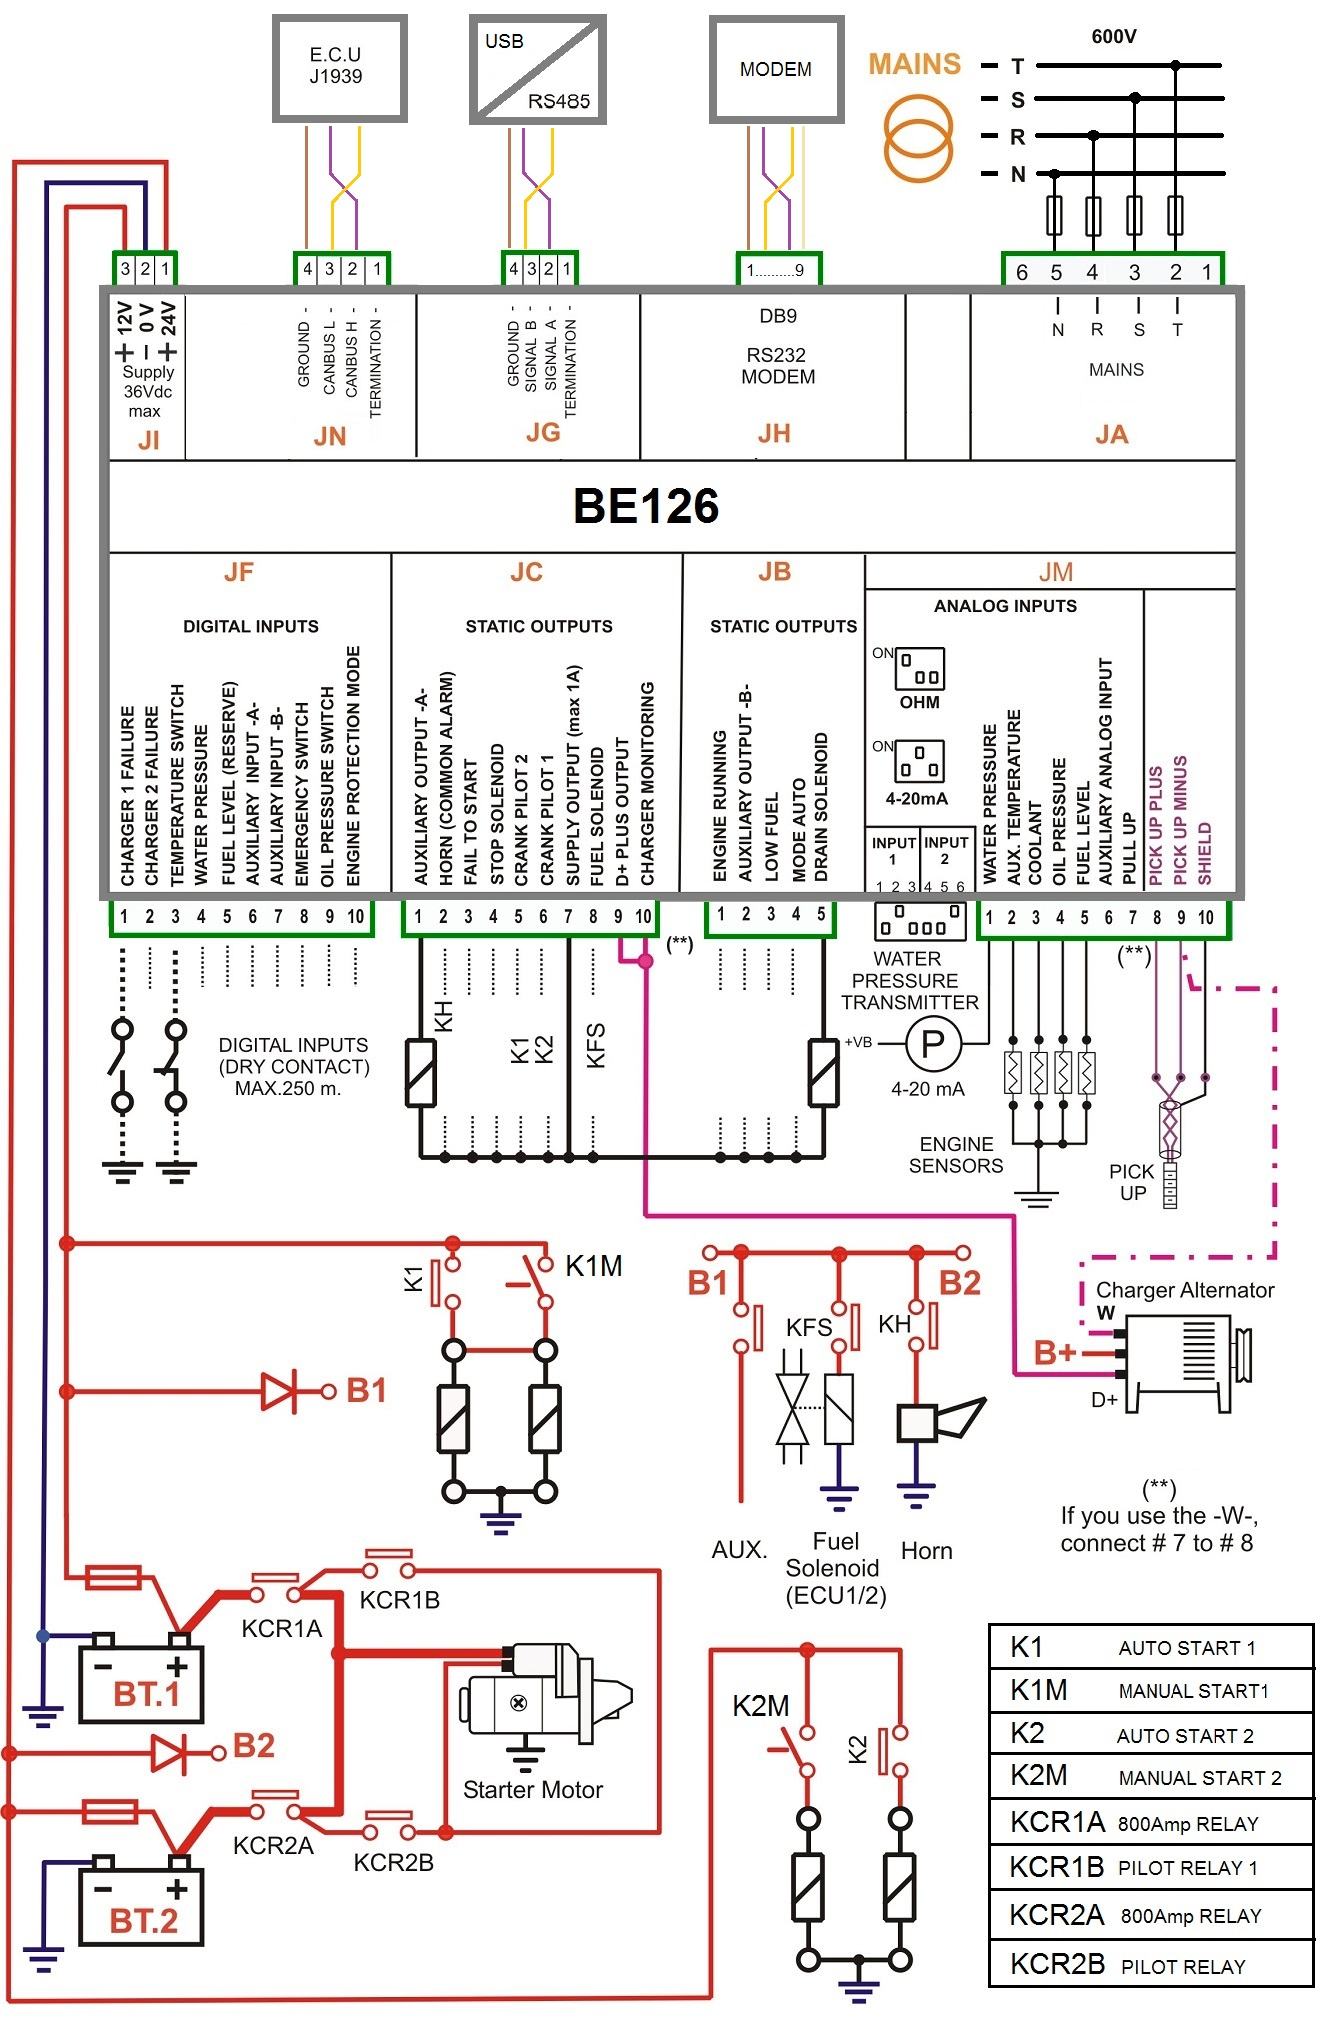 NFPA20 fire pump controller wiring diagram fire pump controller wiring diagram genset controller can bus wiring diagram at webbmarketing.co